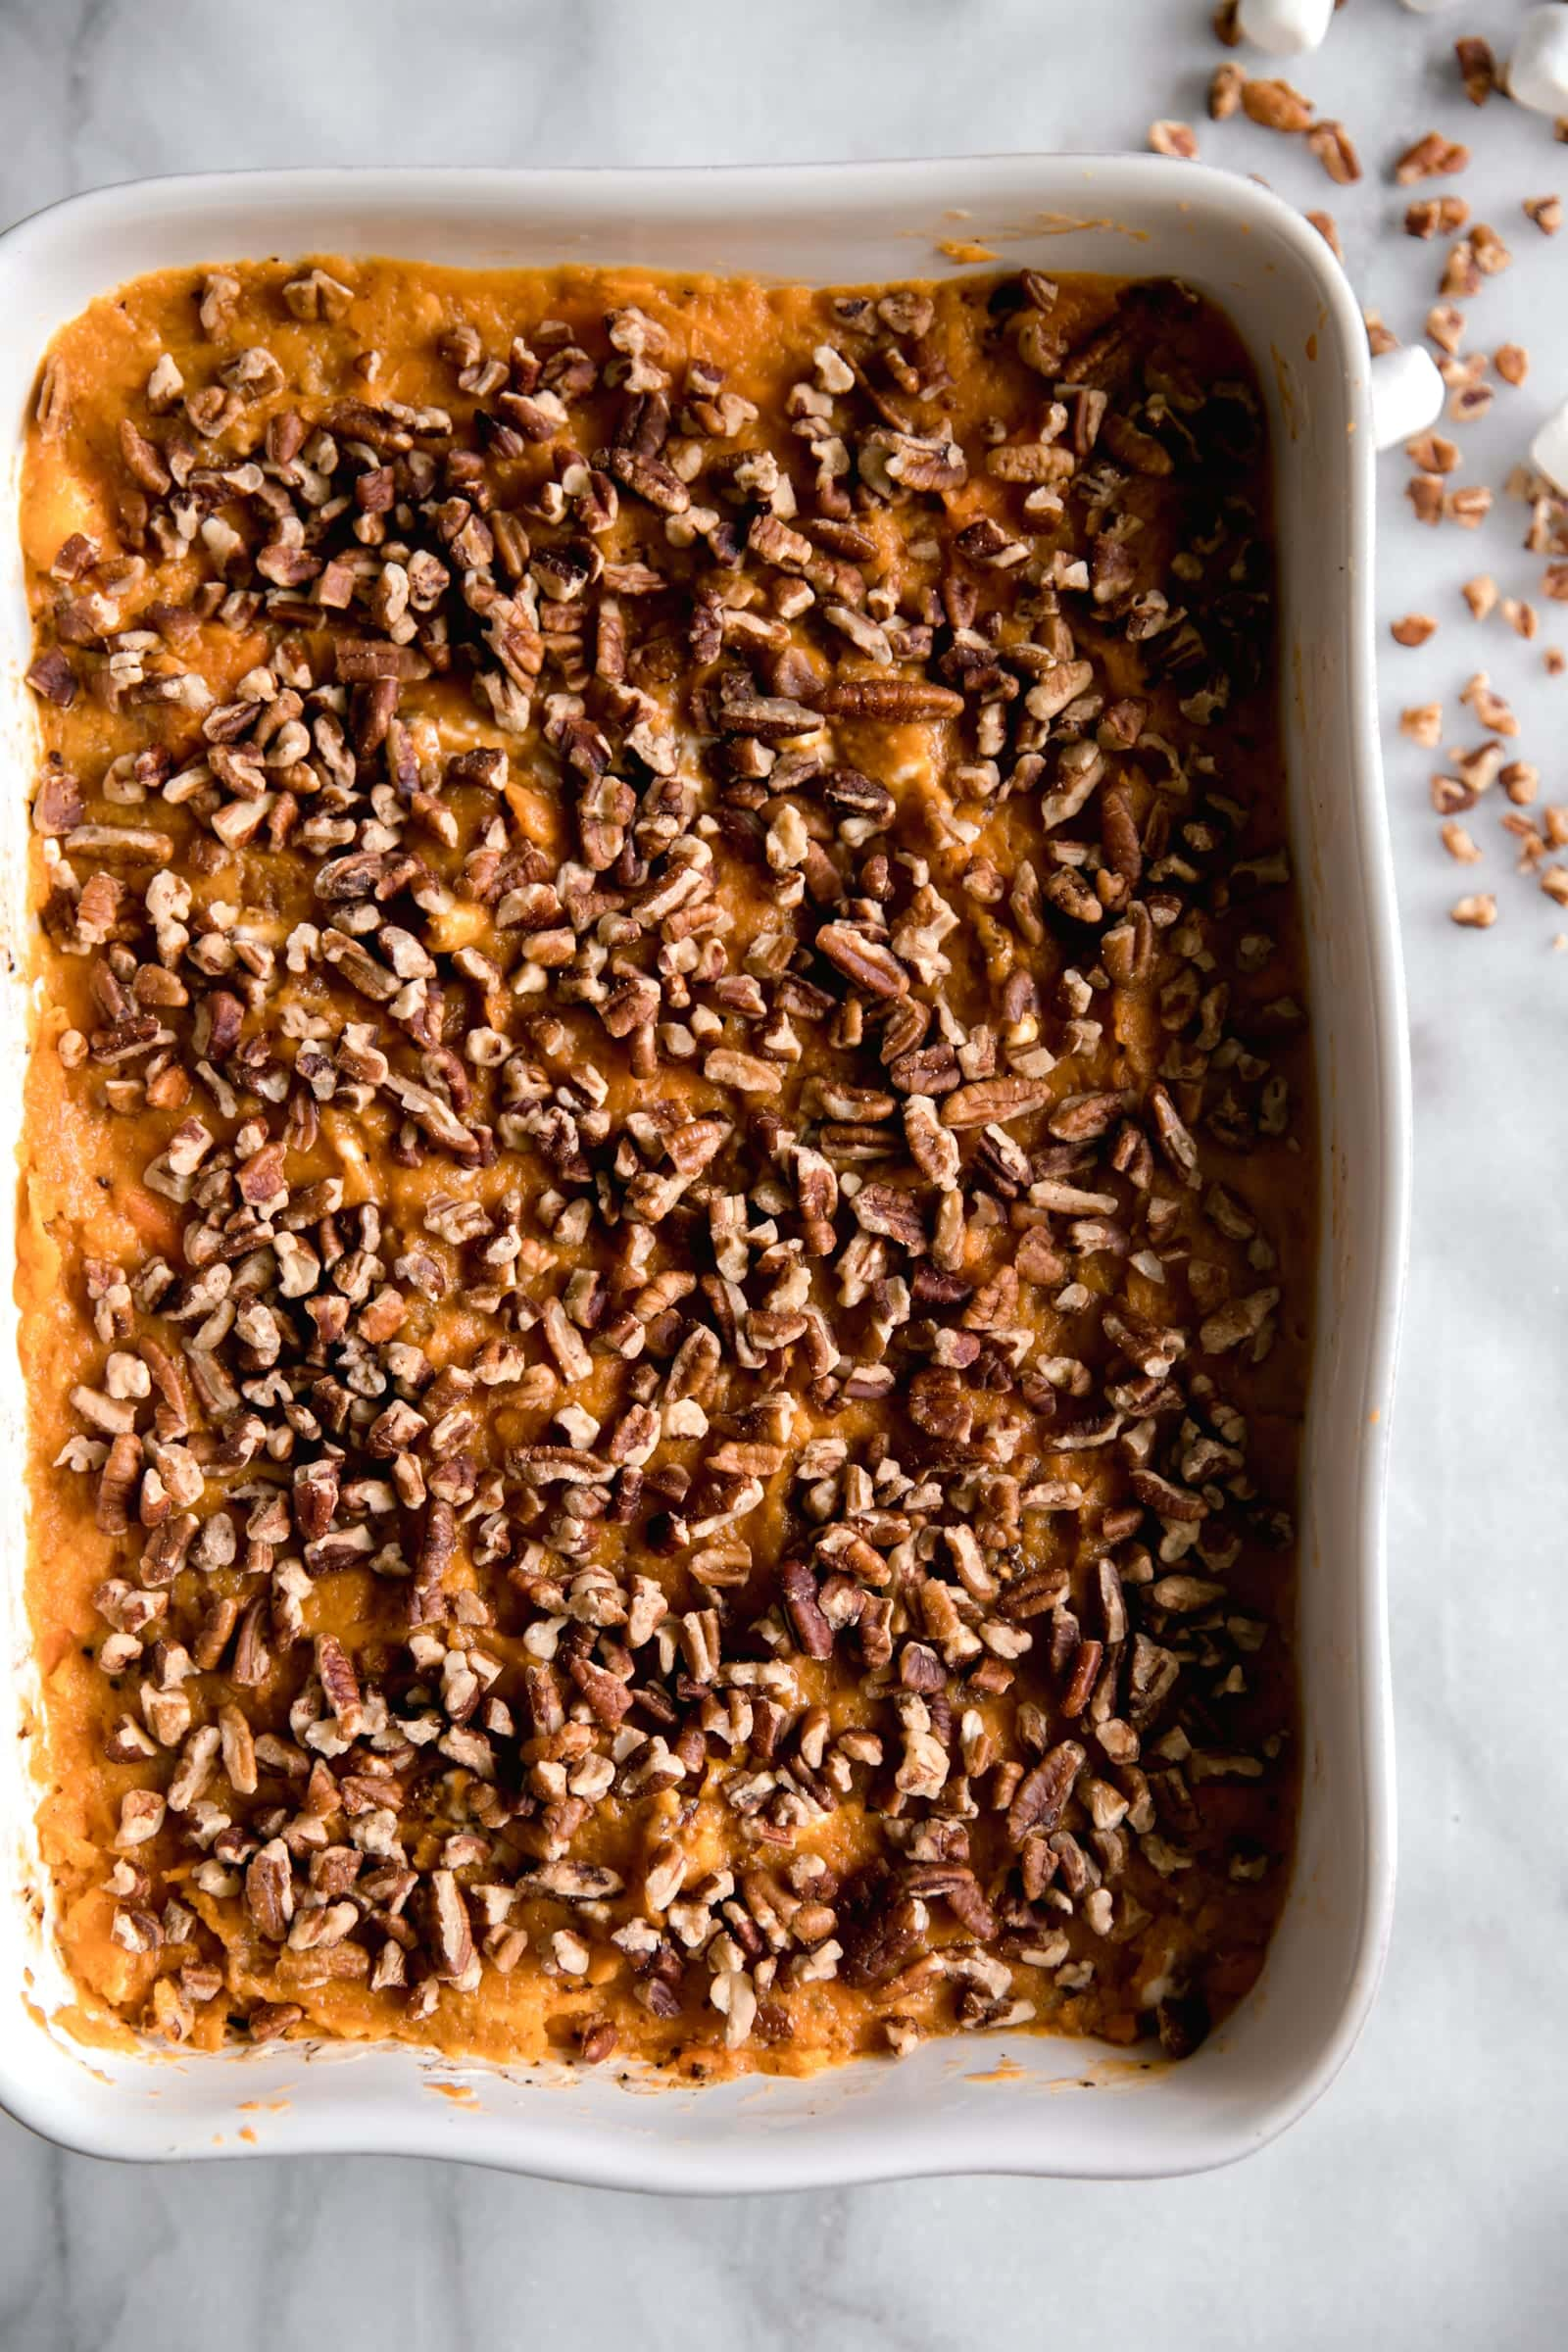 Layer of chopped pecans on top of sweet potato casserole